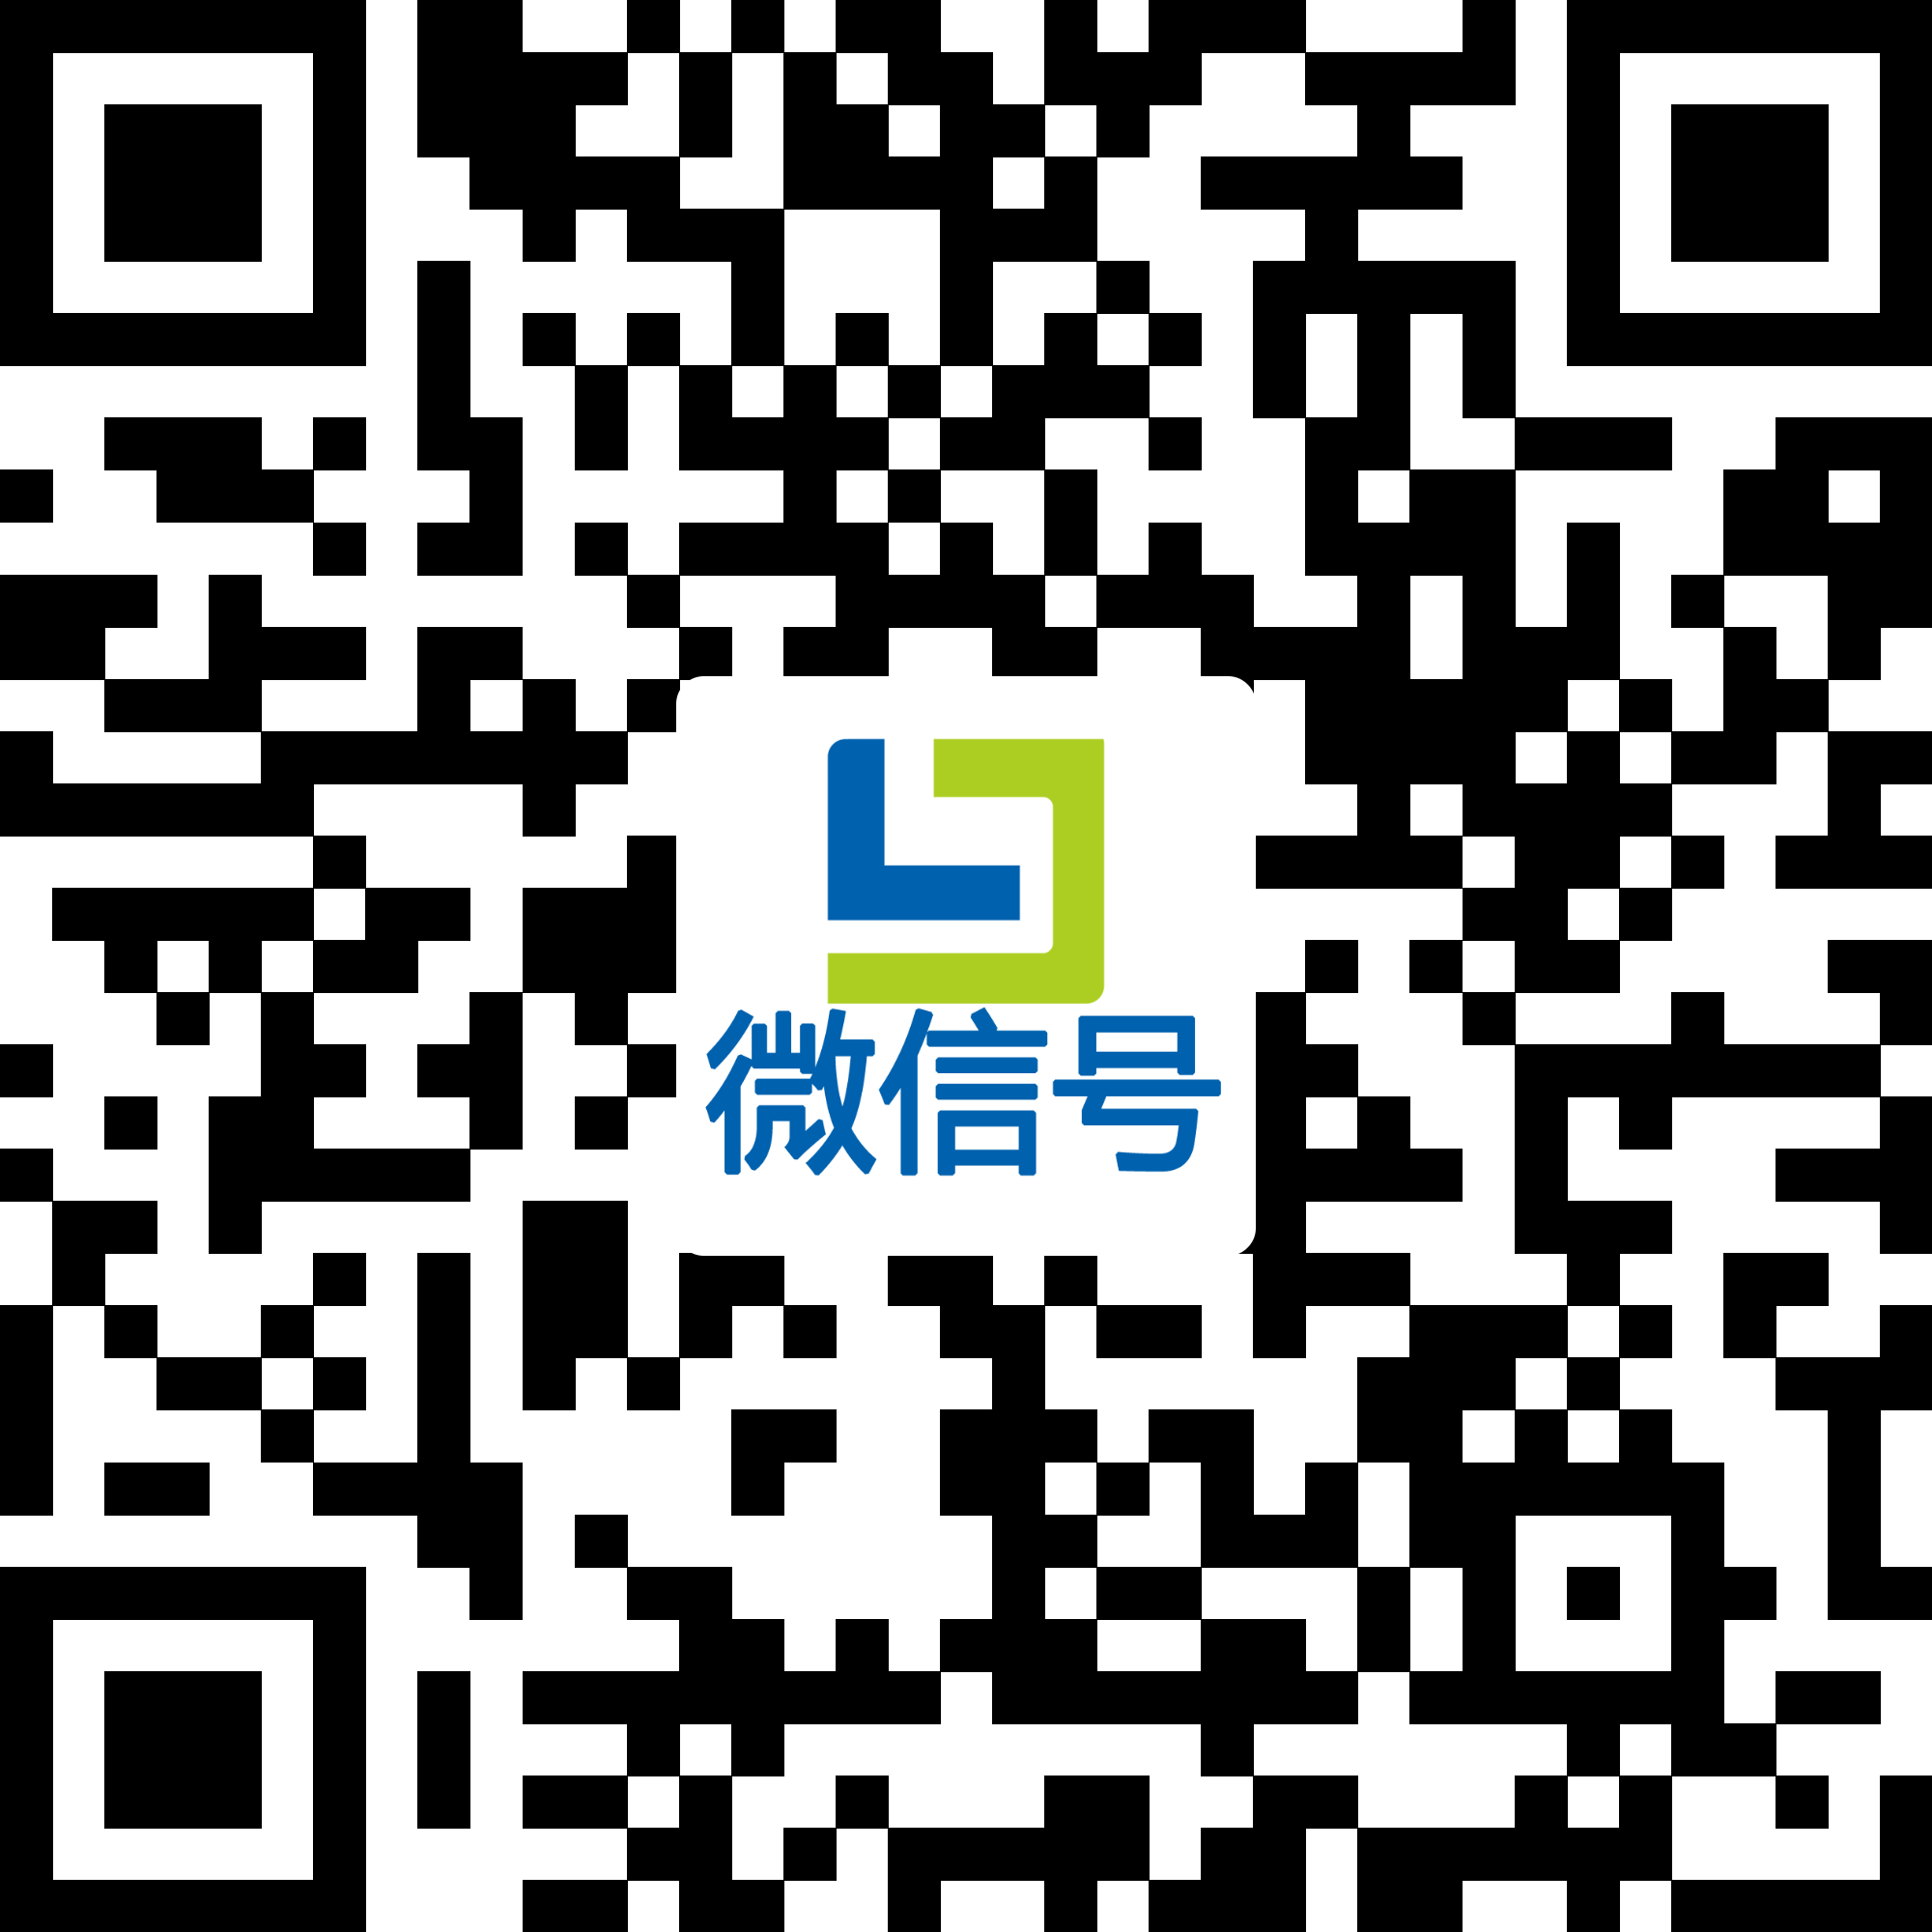 Scan code consultation